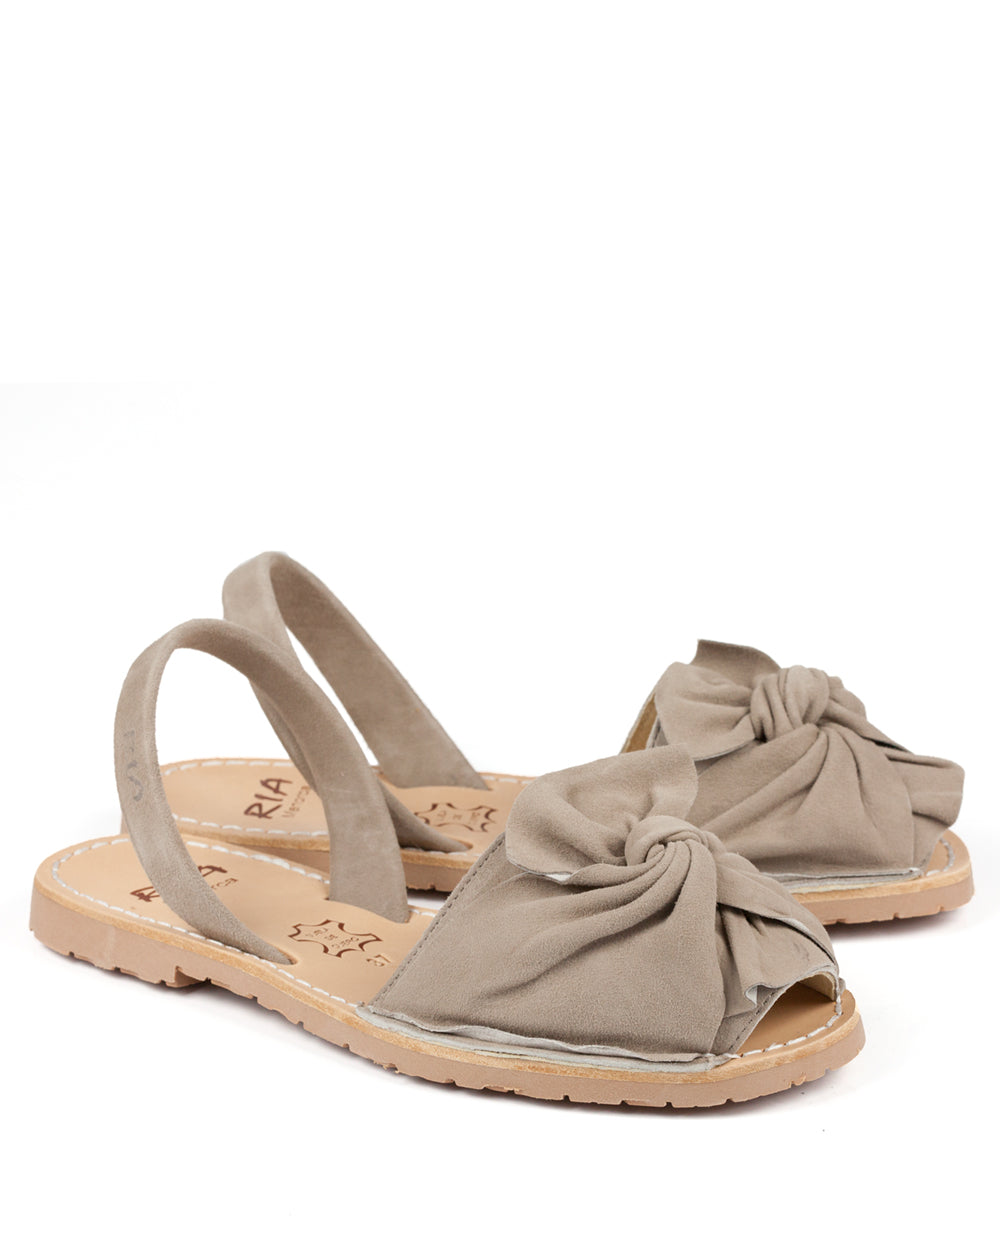 Menorcan Bow Sandals Taupe Suede - The Espadrille Hut